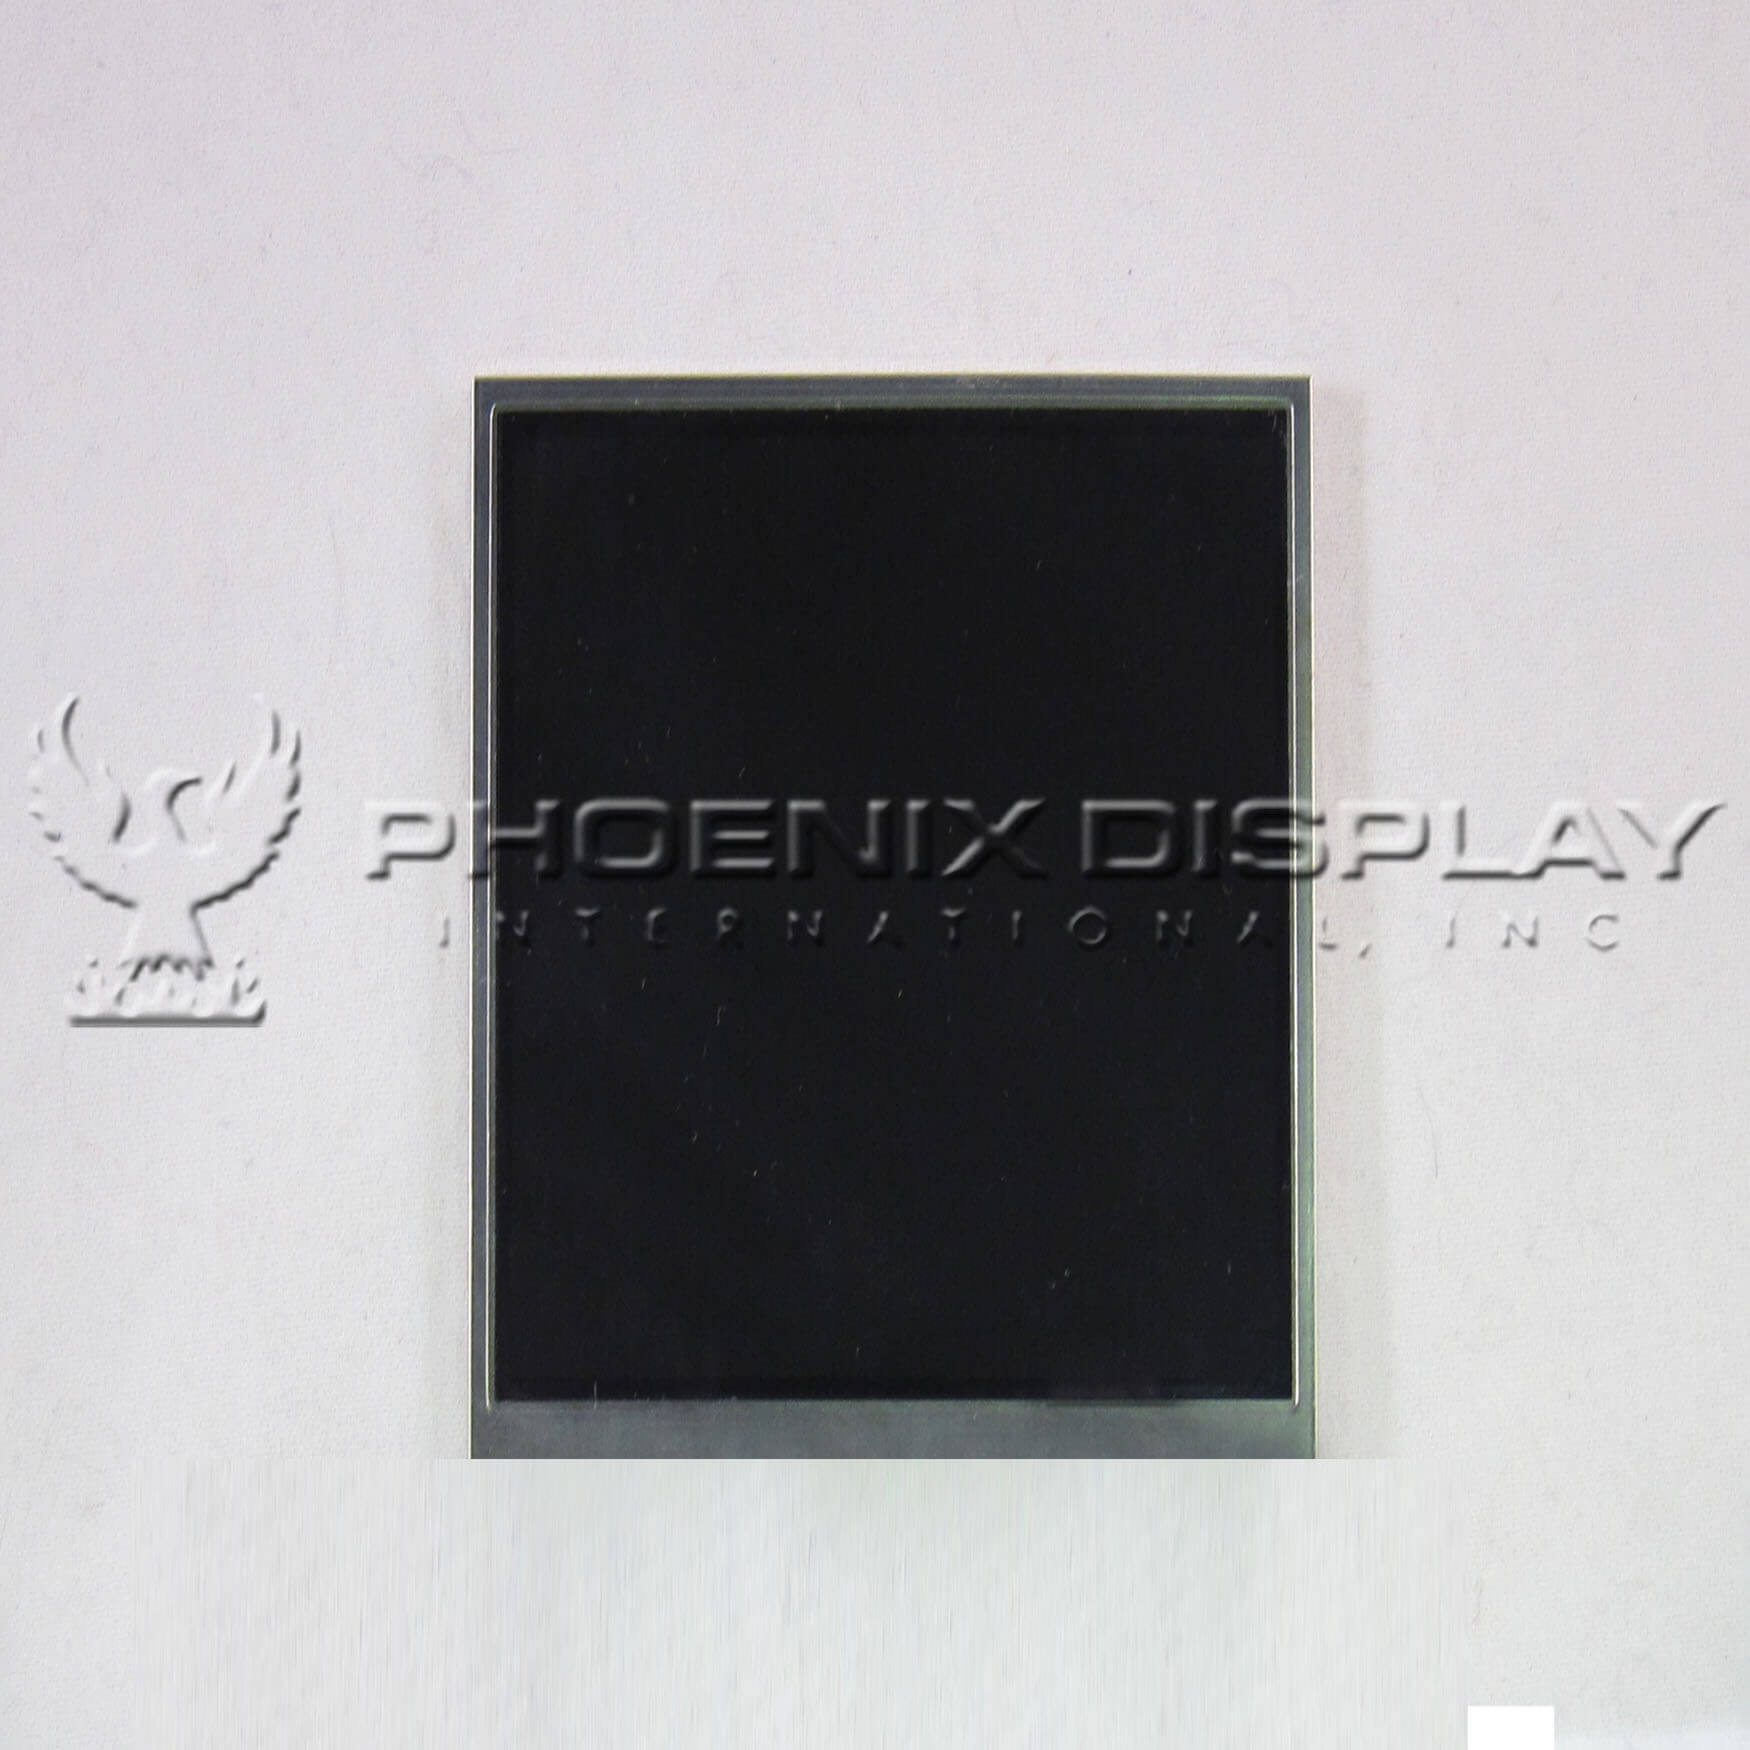 15 1024 x 768 Transmissive Color TFT Display | PDI150TC-L01 | Phoenix Display International